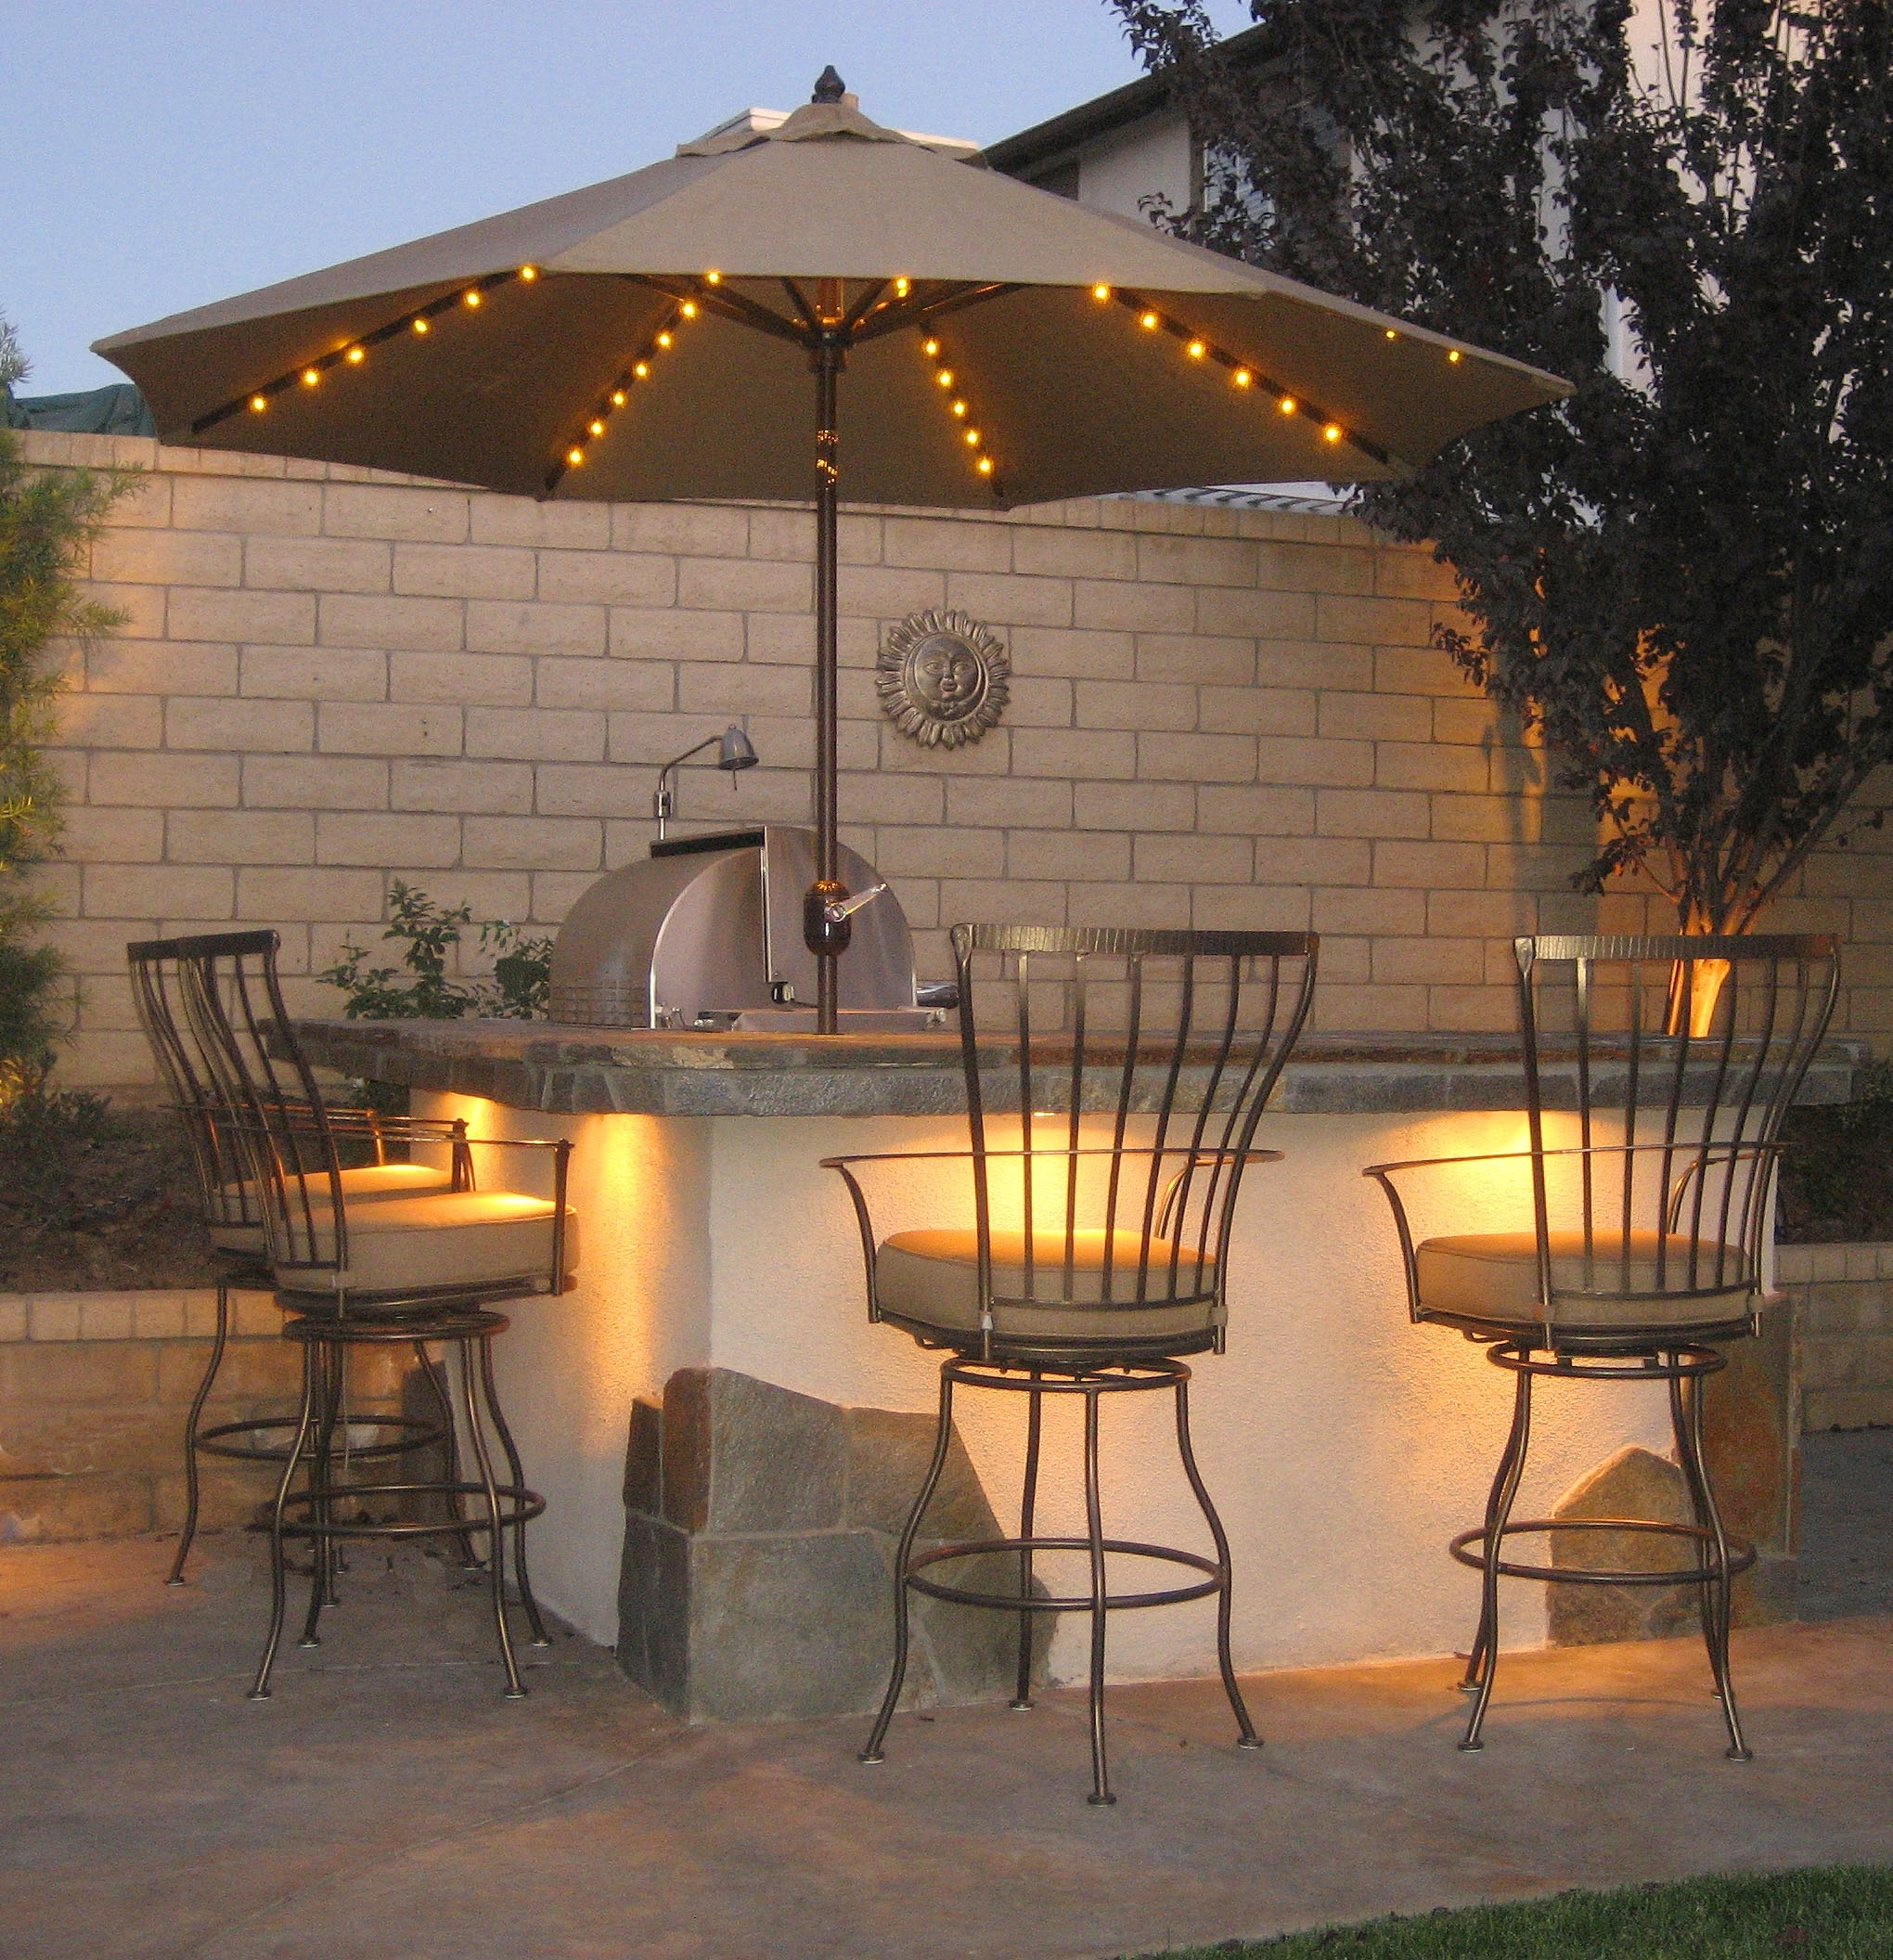 Famous Solar Patio Umbrellas Intended For Lighted Patio Umbrellas — Mistikcamping Home Design : Different (View 4 of 20)